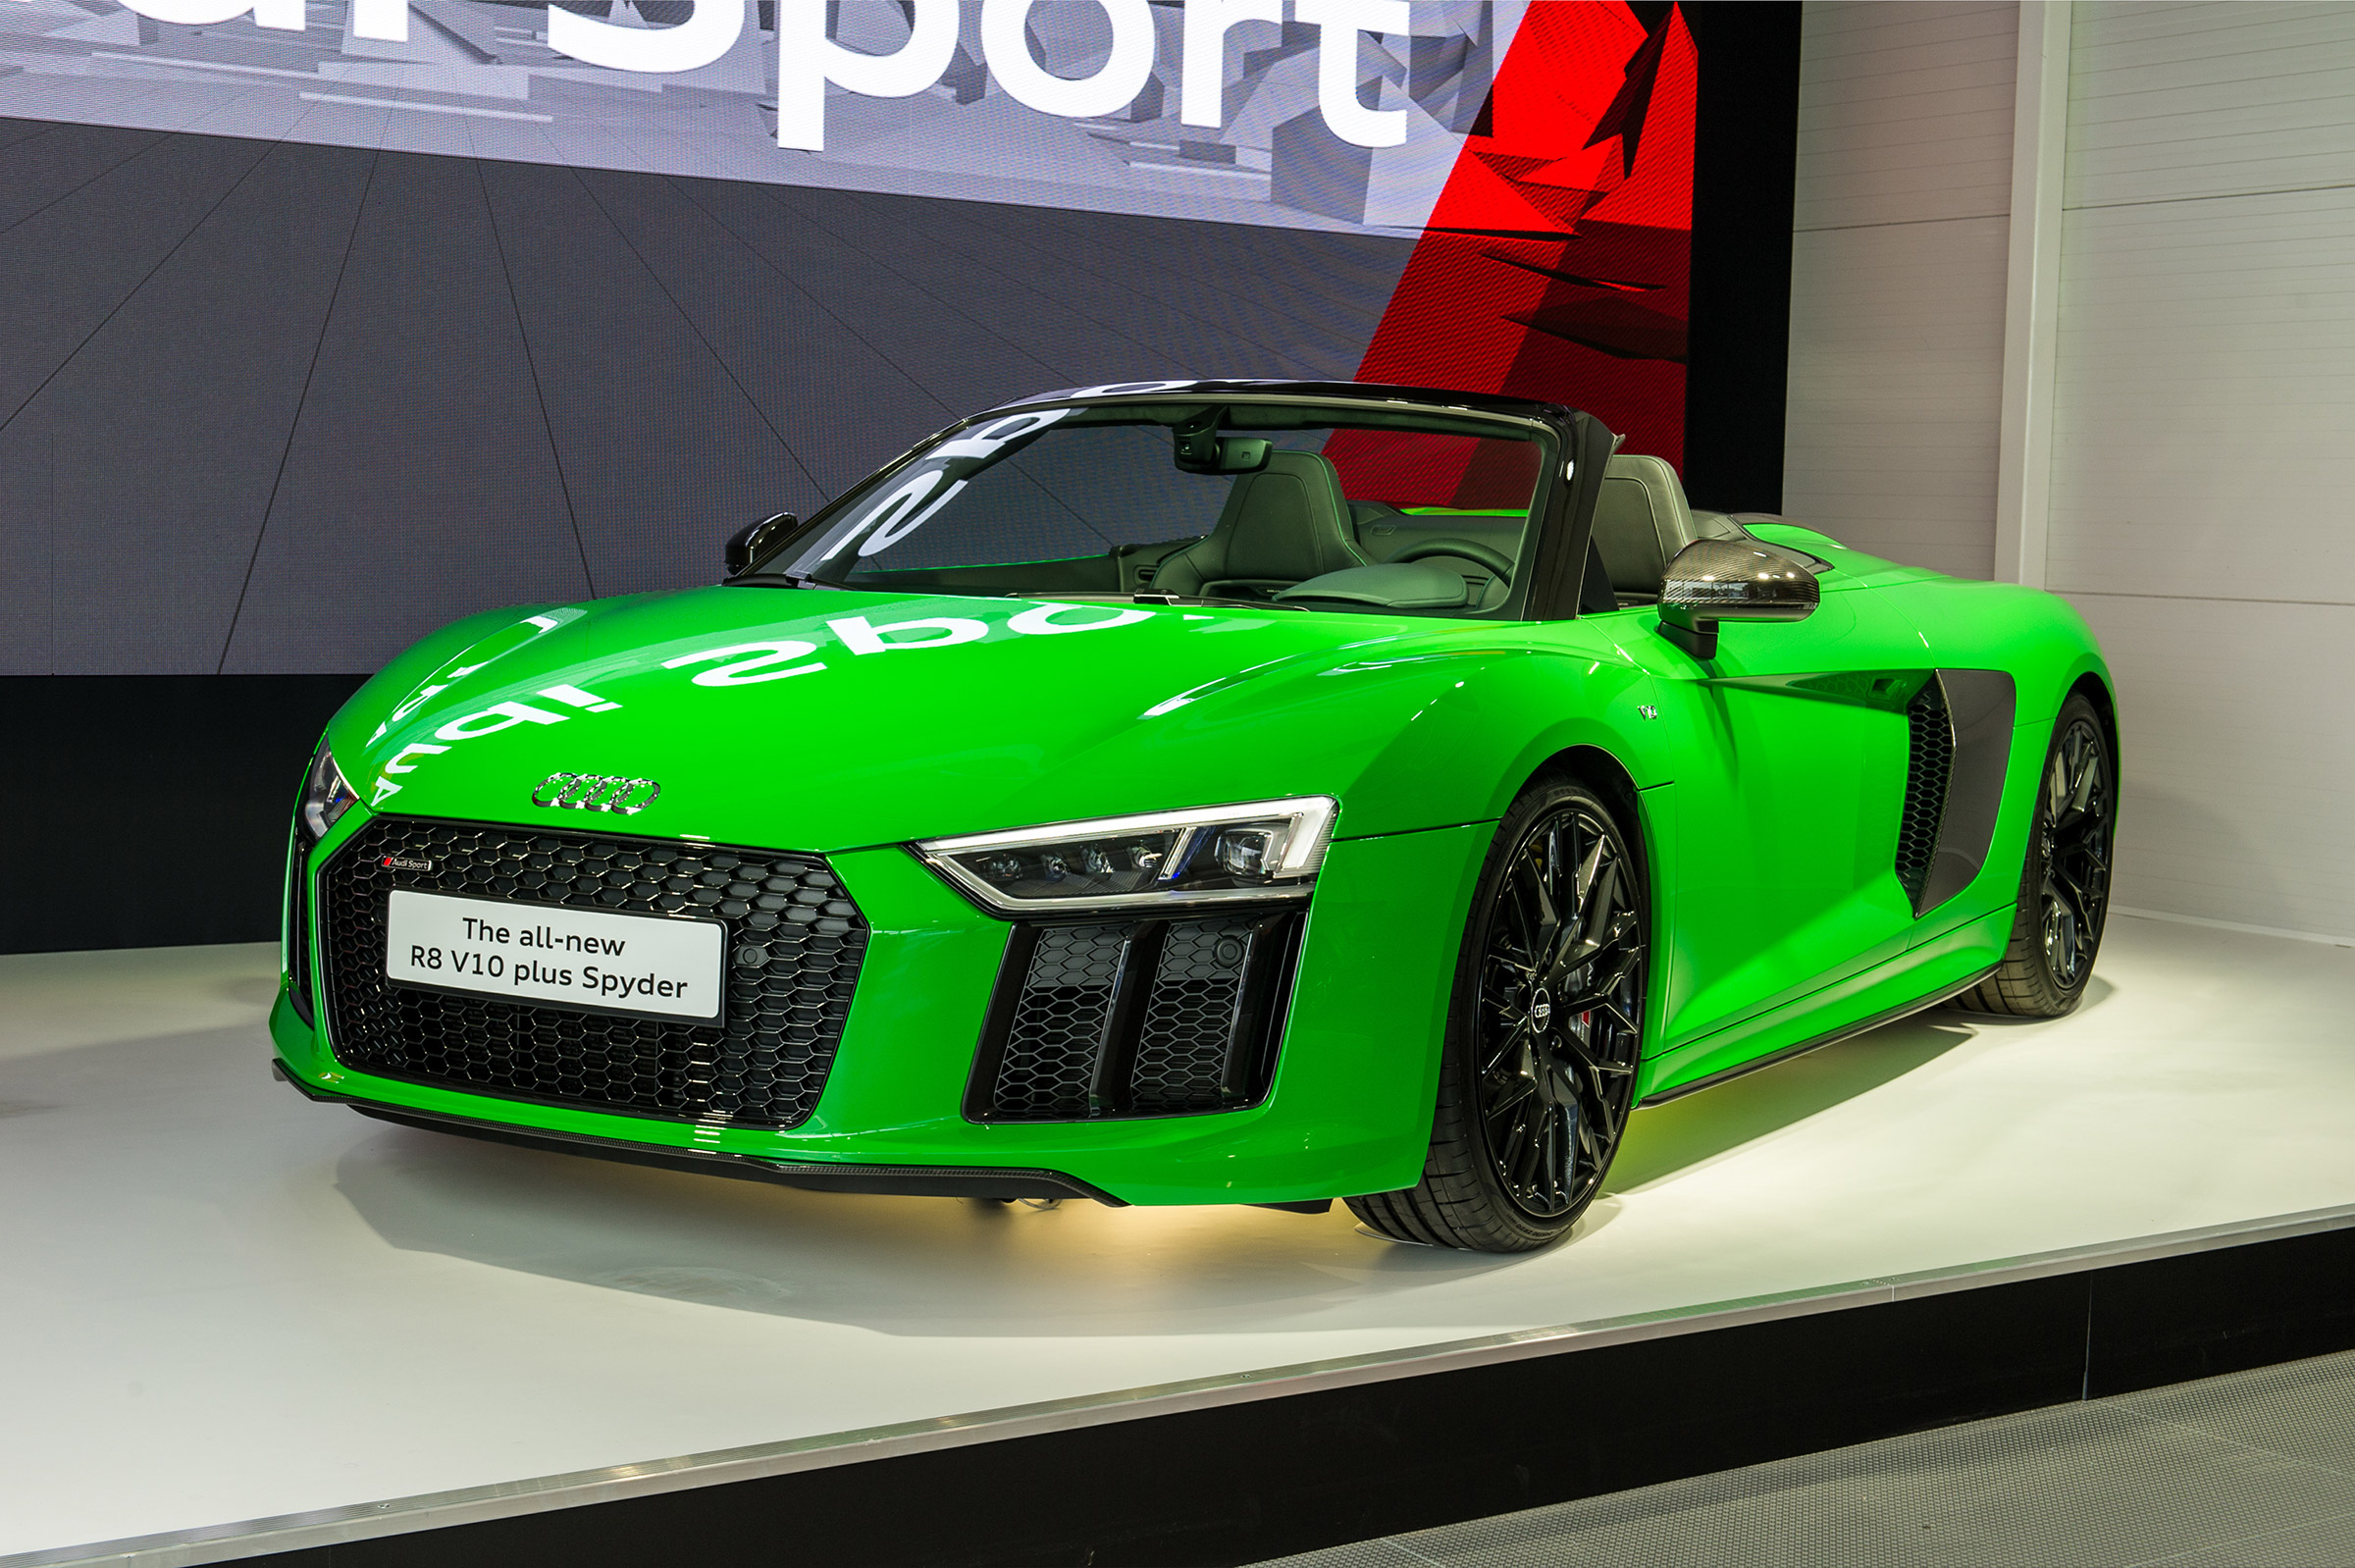 602bhp Audi R8 Spyder V10 Plus Blasts Into Goodwood Auto Express